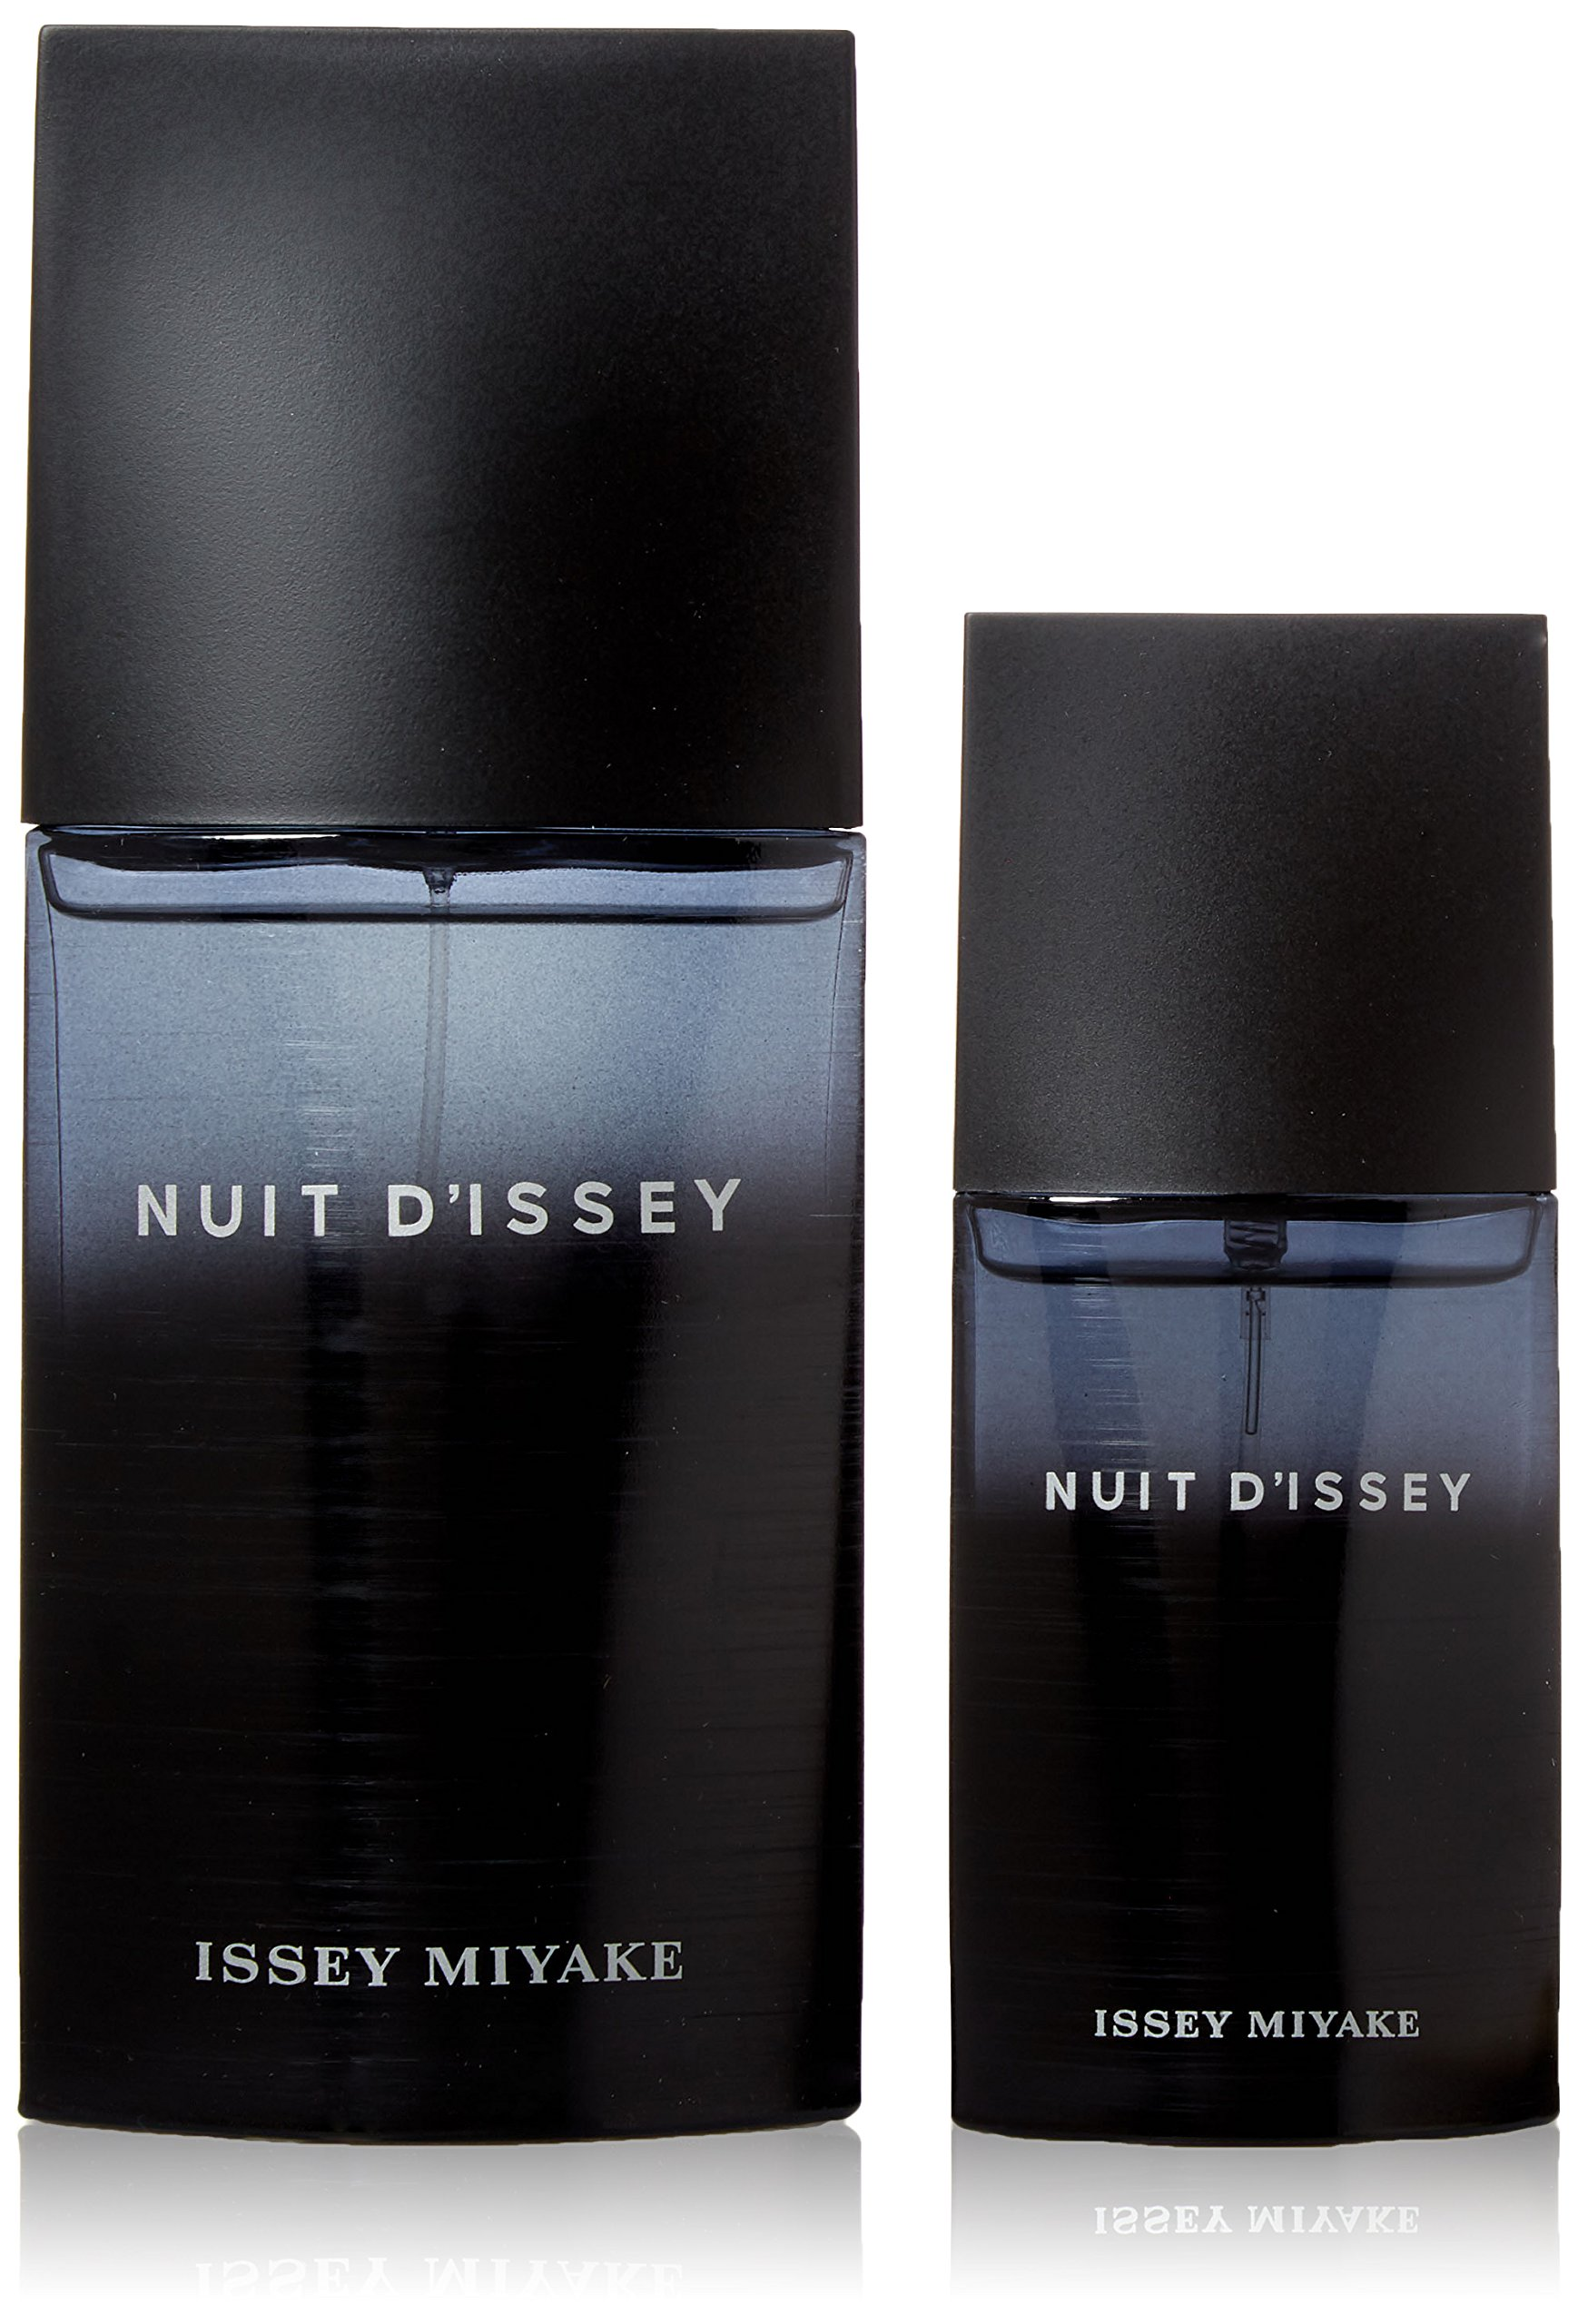 Issey Miyake for Men, 2 Piece Gift Set, Nuit D'issey